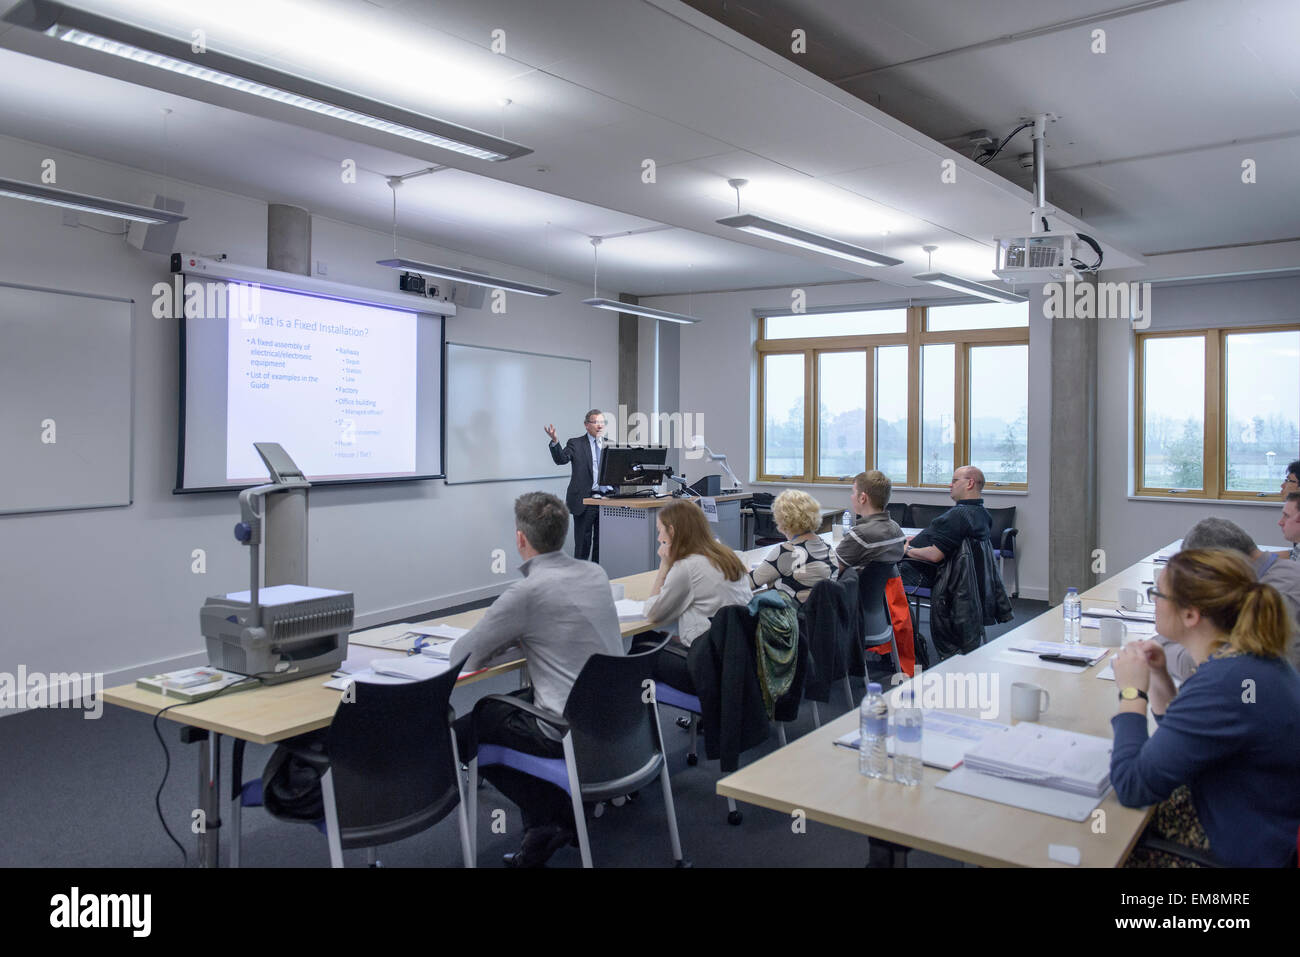 Lecturer addressing audience in seminar lecture - Stock Image